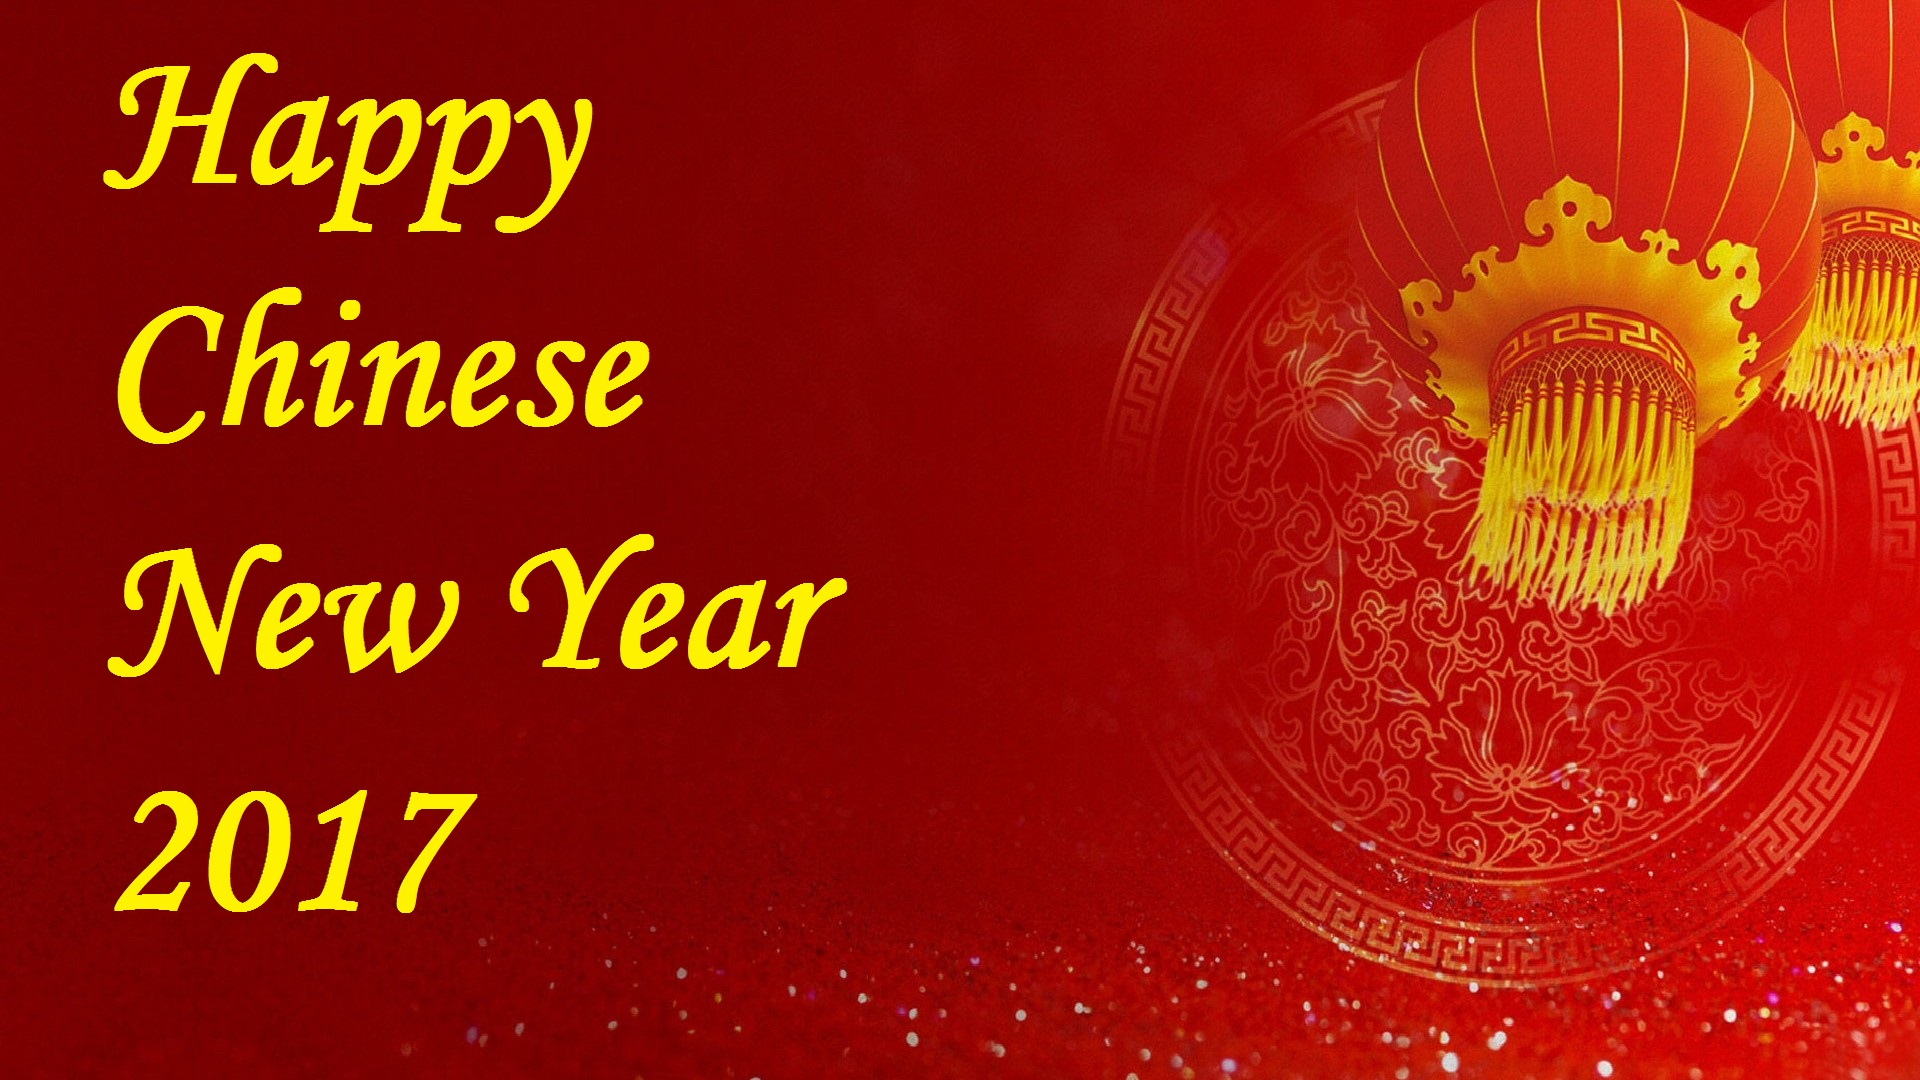 Happy Chinese New Year Greetings Images And Wallpapers Events Today